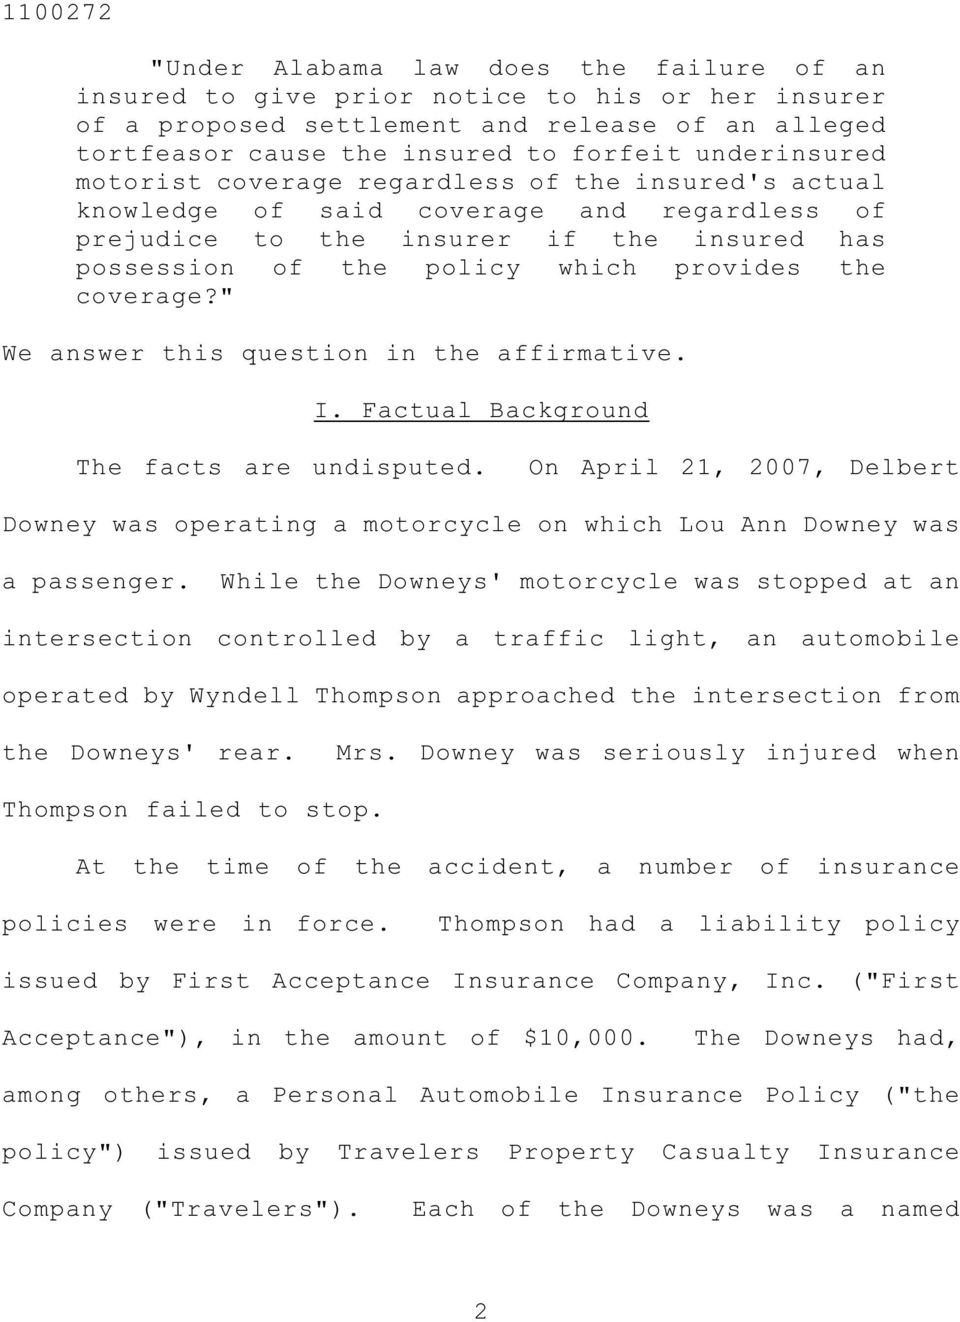 """ We answer this question in the affirmative. I. Factual Background The facts are undisputed. On April 21, 2007, Delbert Downey was operating a motorcycle on which Lou Ann Downey was a passenger."